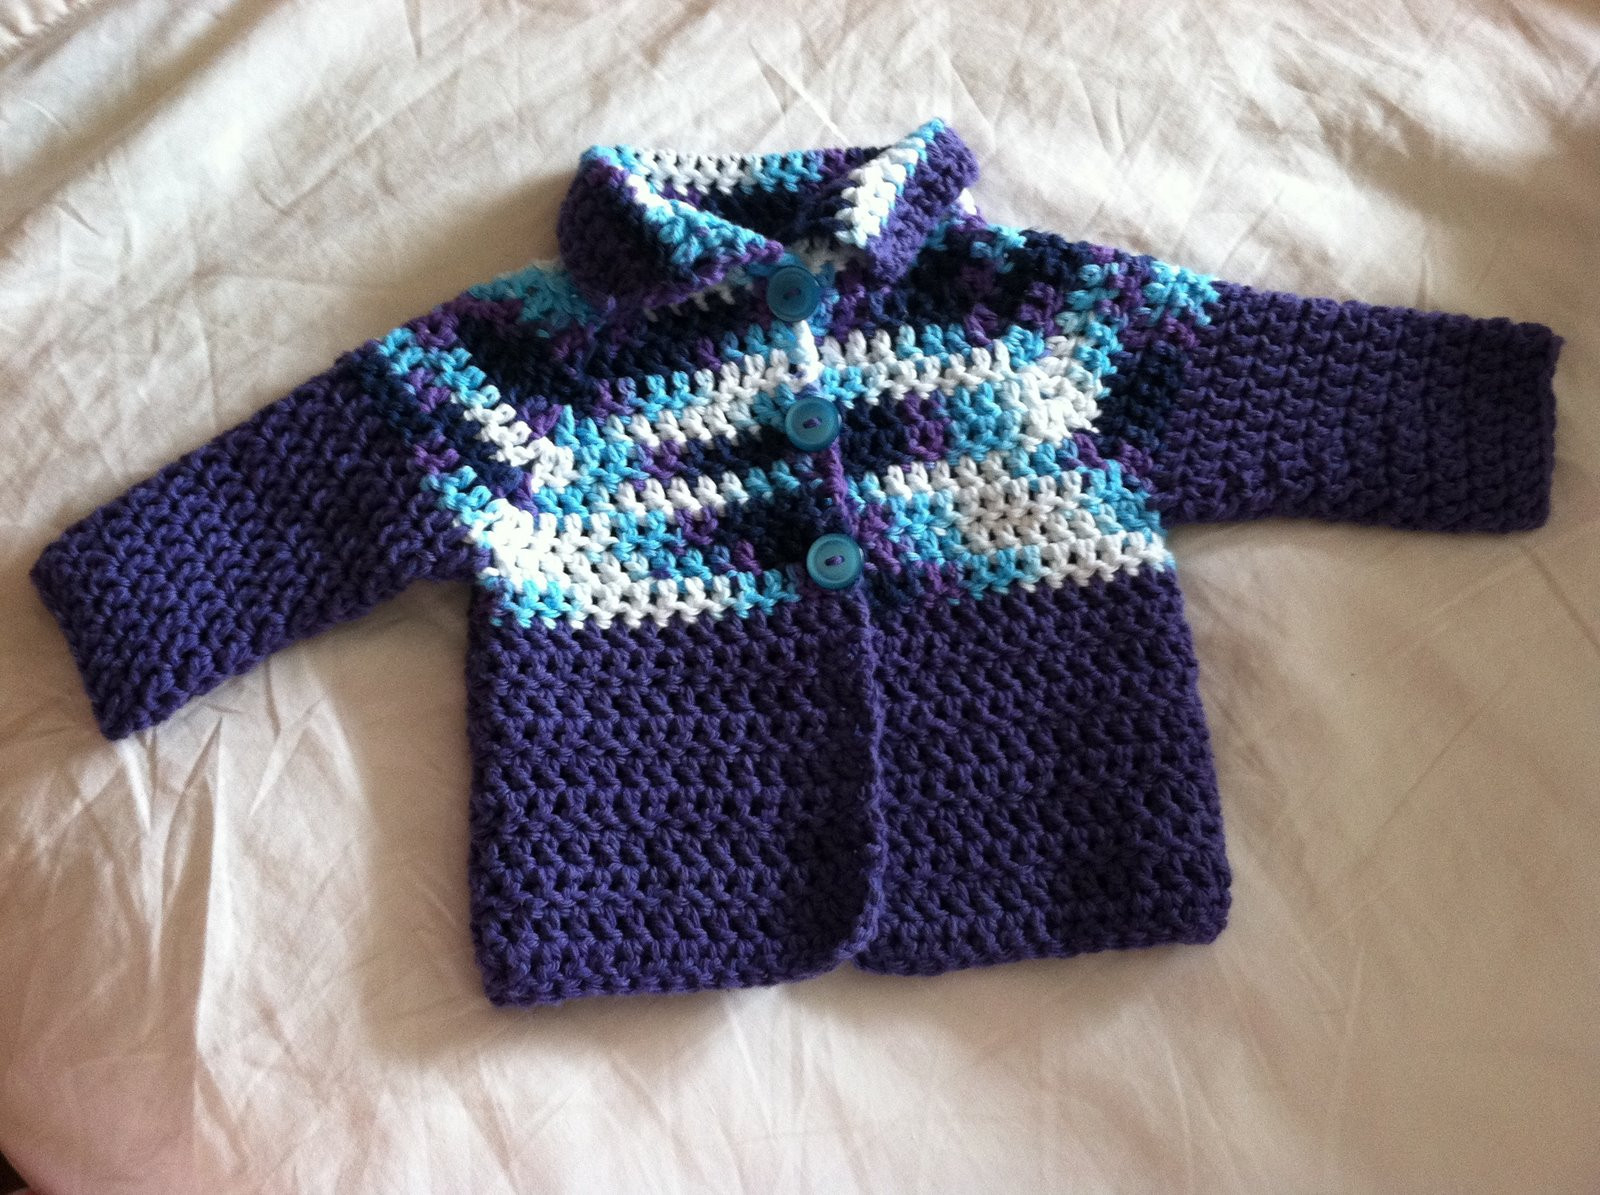 Baby Sweater Patterns New Cookin & Craftin Crocheted Baby Cardigan Of Beautiful 41 Images Baby Sweater Patterns